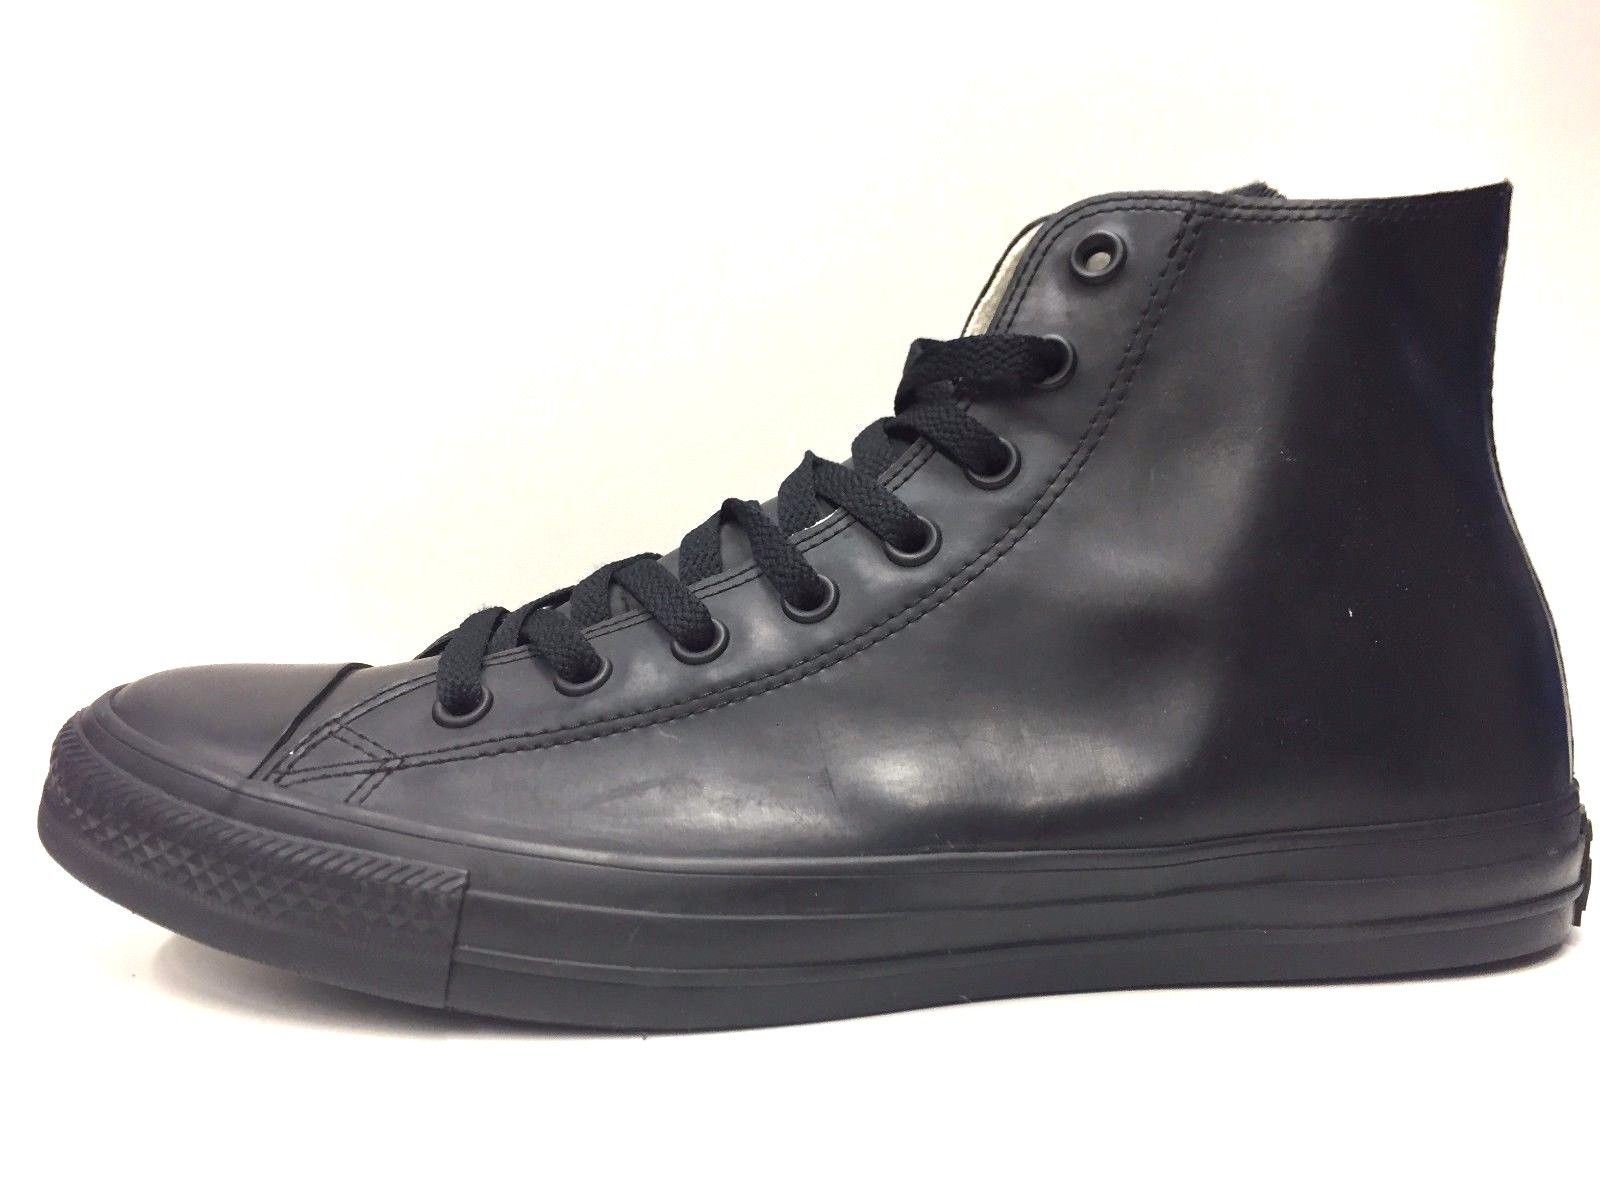 SCARPE CASUAL SNEAKERS UOMO CONVERSE ORIGINALE CT HI 144740C SHOES A/I NUOVO